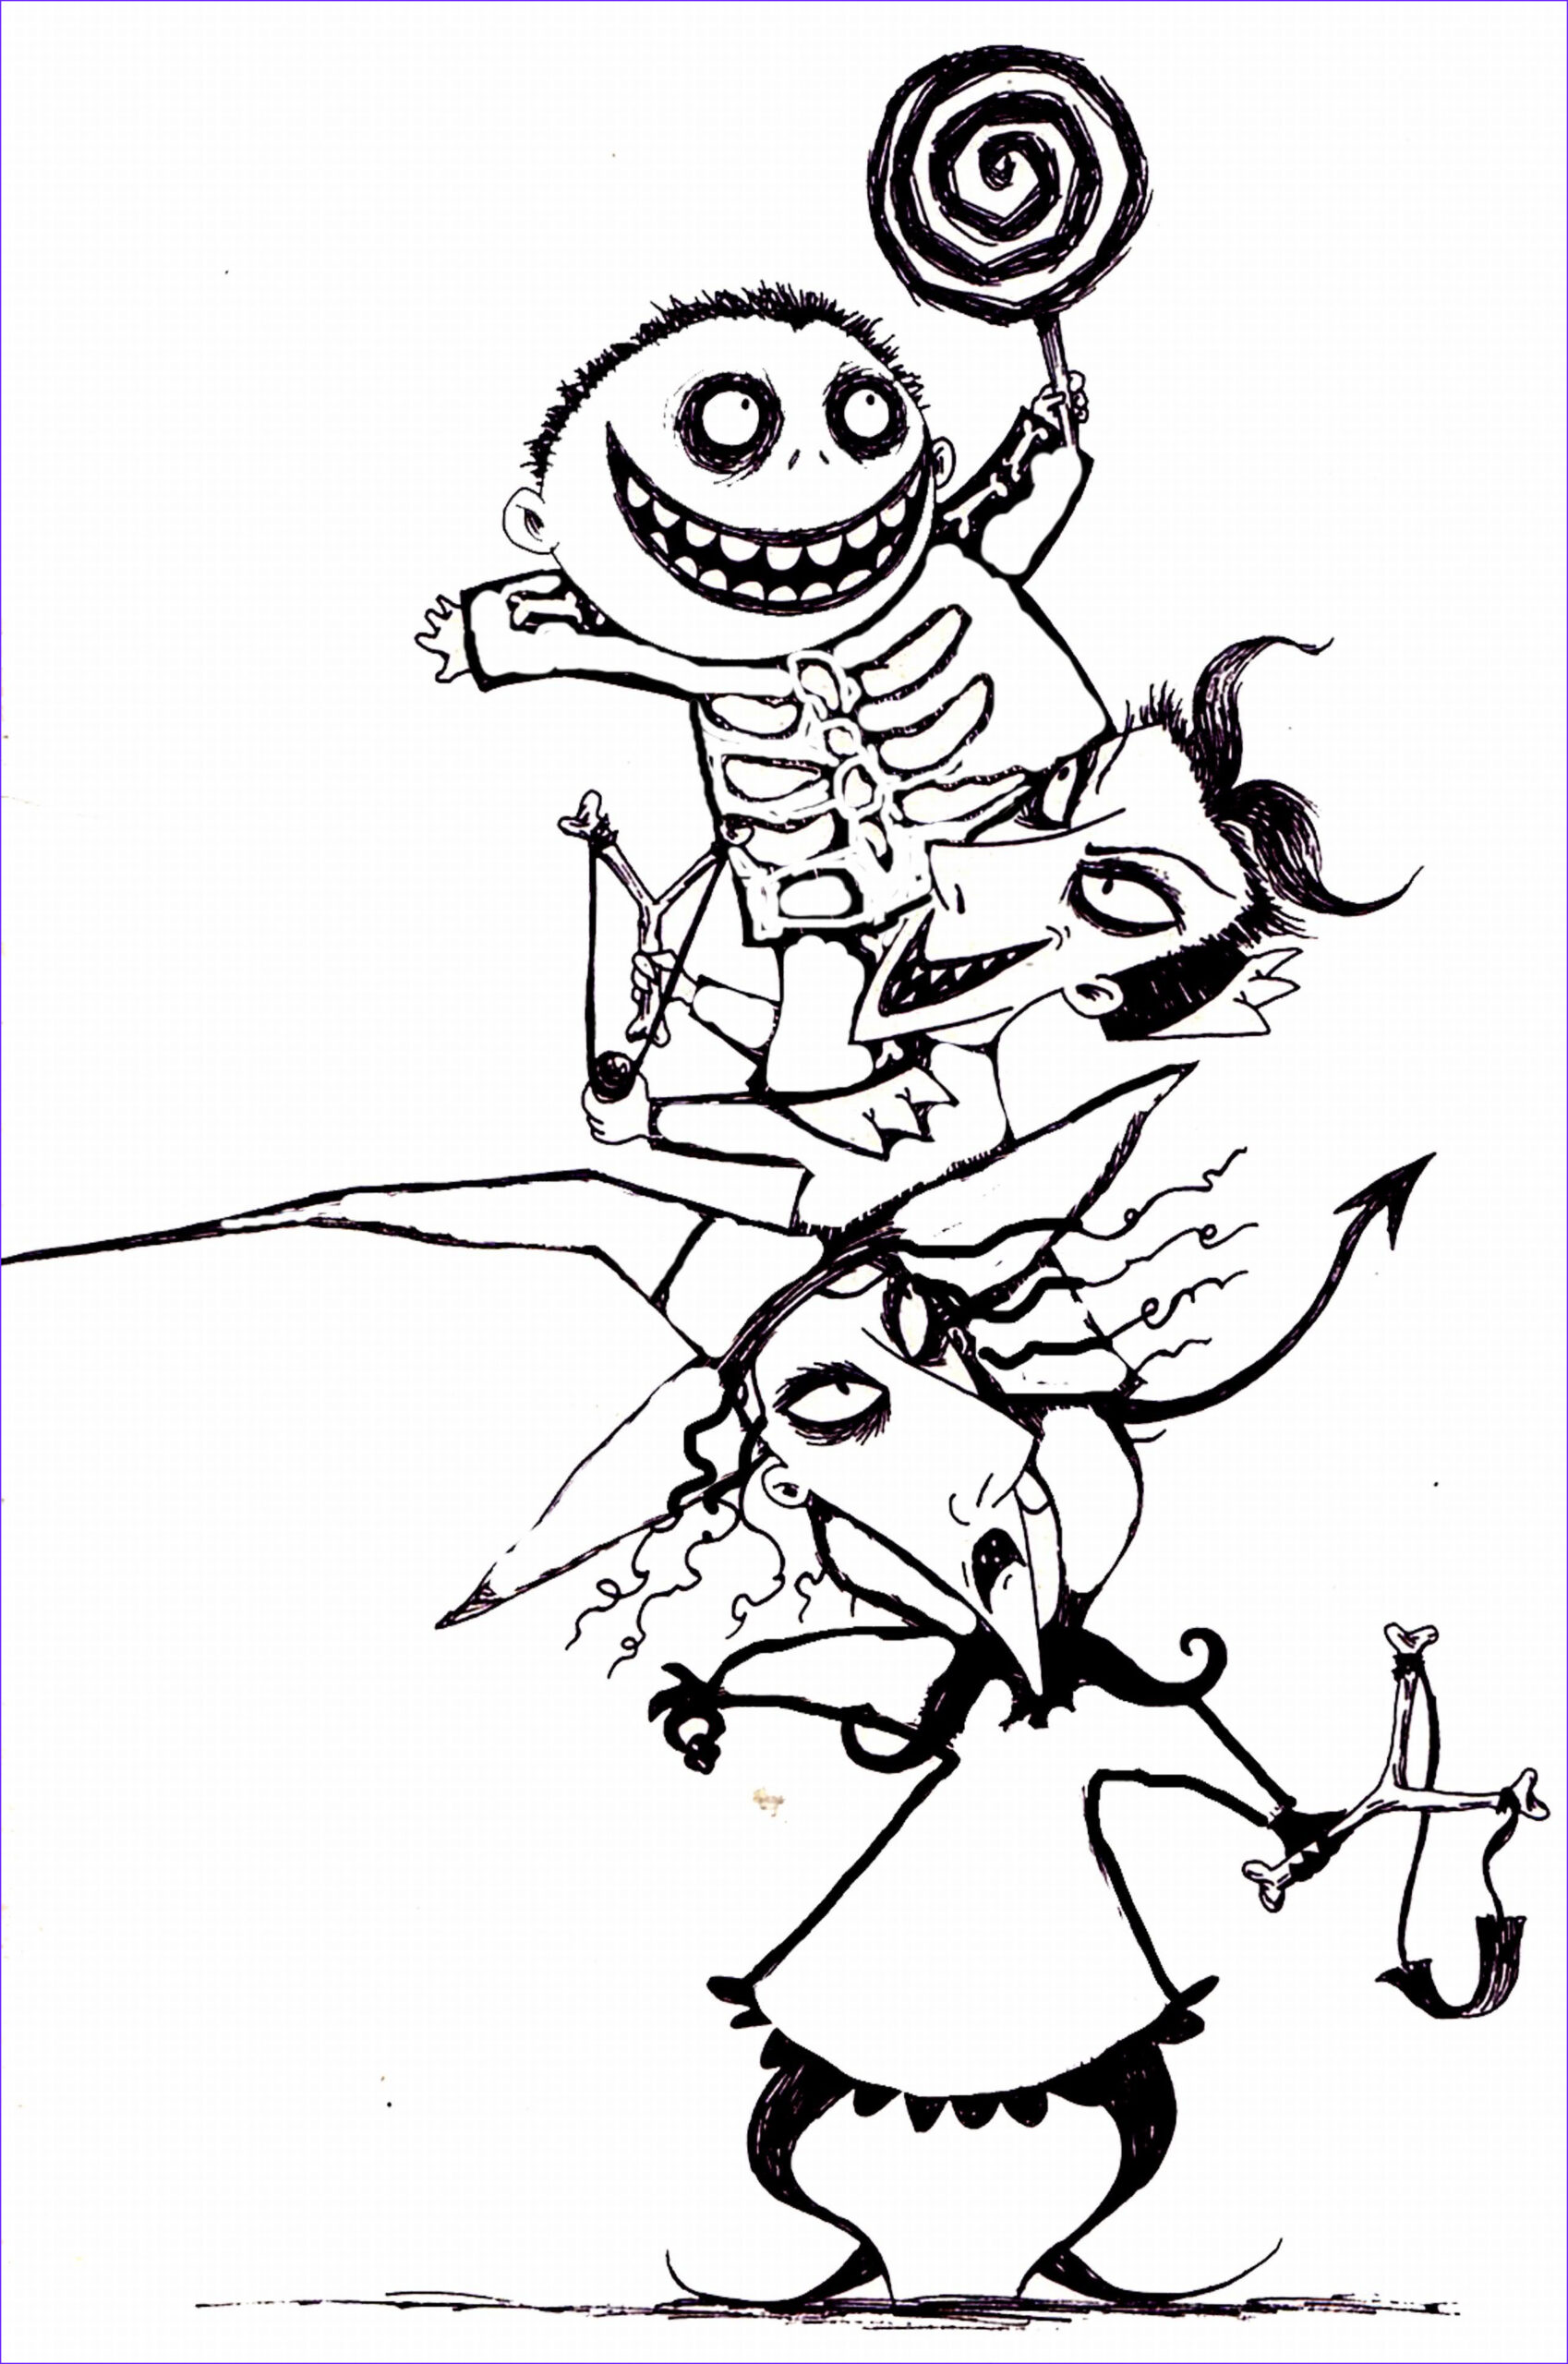 Nightmare before Christmas Coloring Pages Best Of Images Free Printable Nightmare before Christmas Coloring Pages